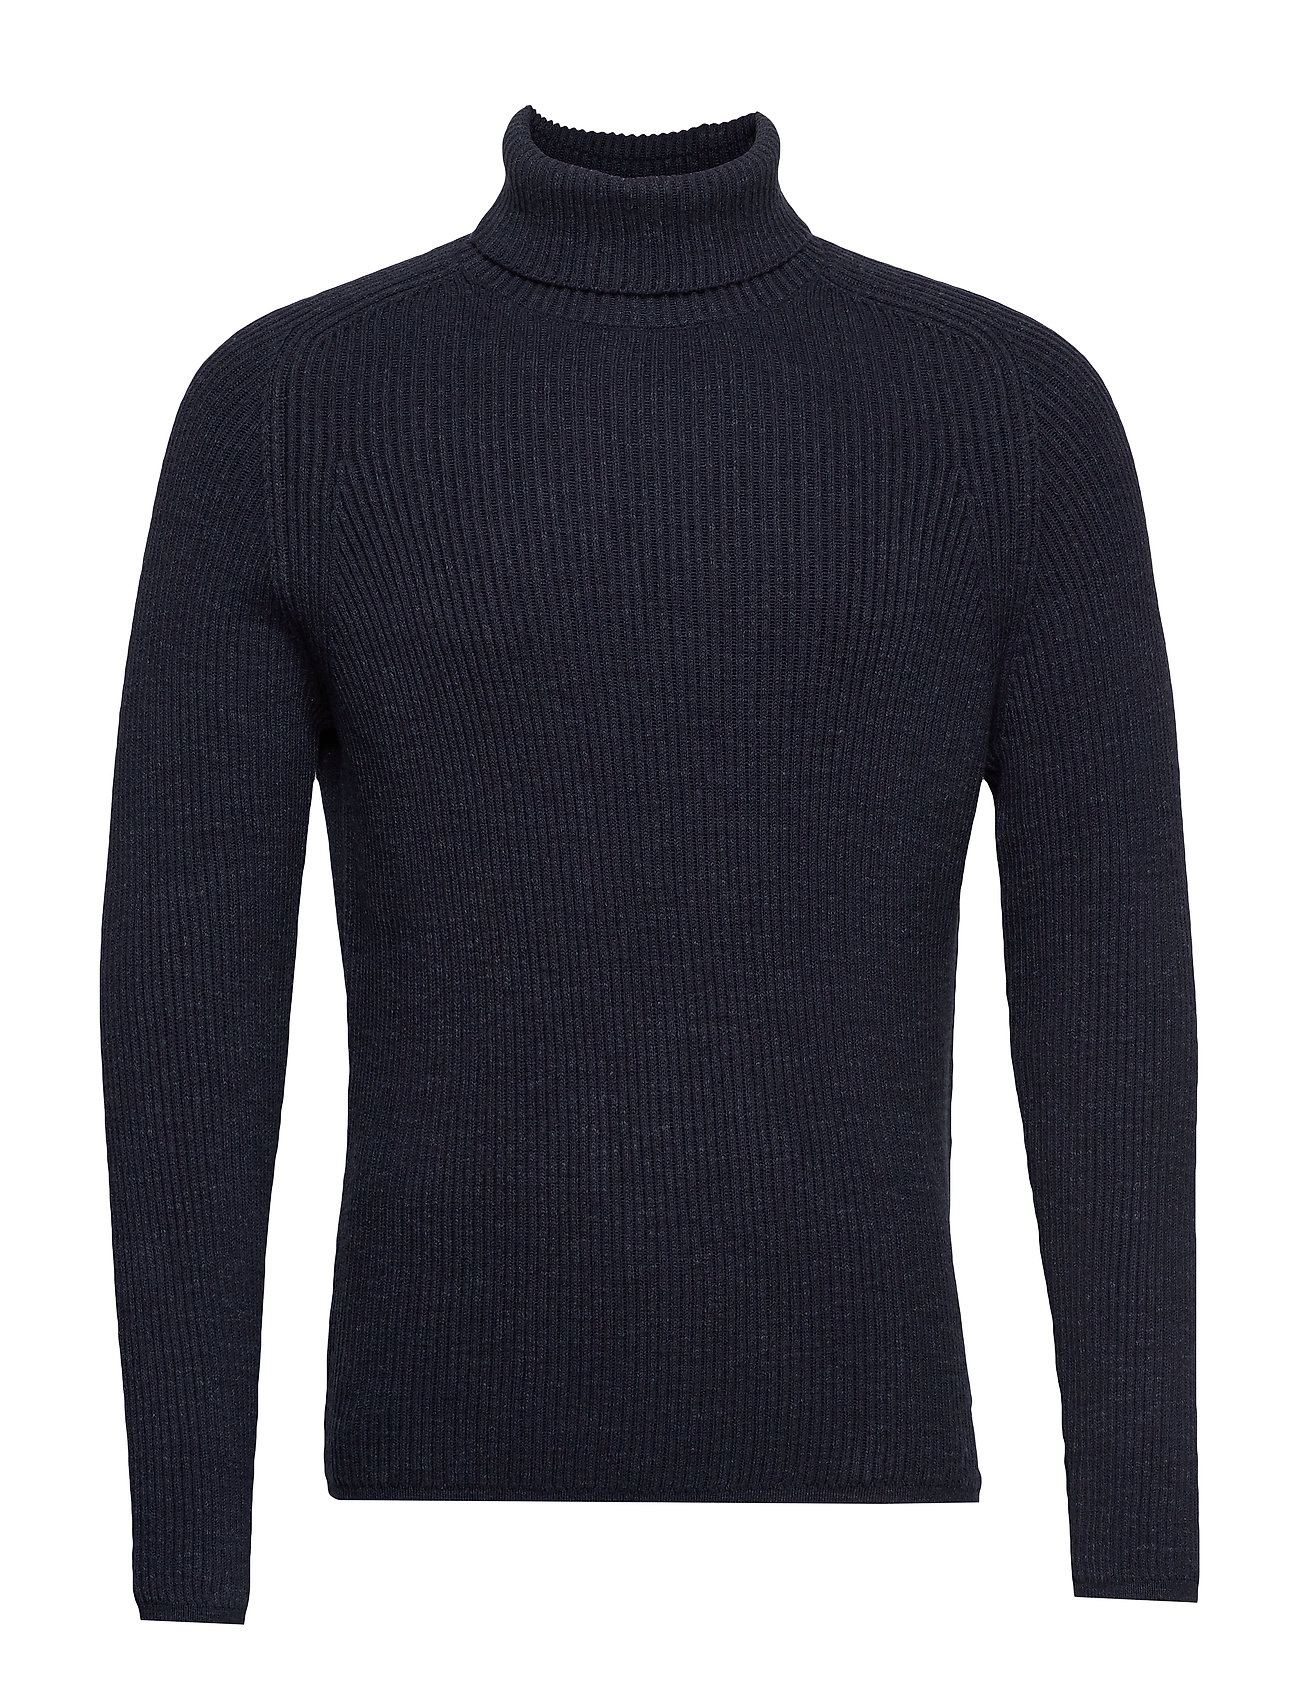 Marc O'Polo Pullover, Turtle Neck - TOTAL ECLIPSE